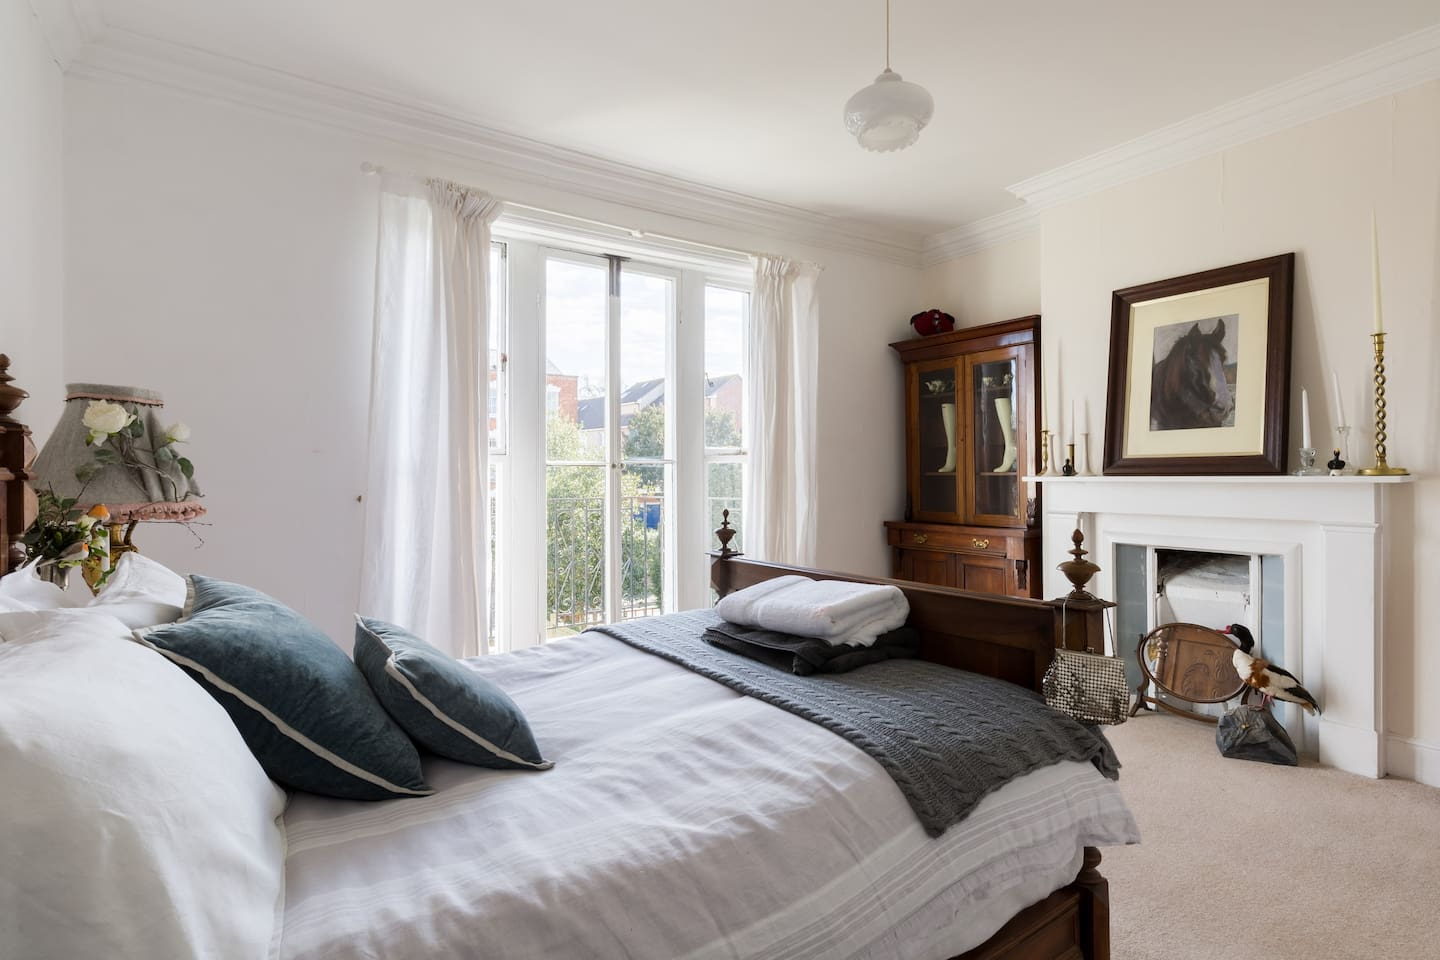 This beutifull double room is on the middle floor. It has its ownbalcony overlooking Kingsholm road.